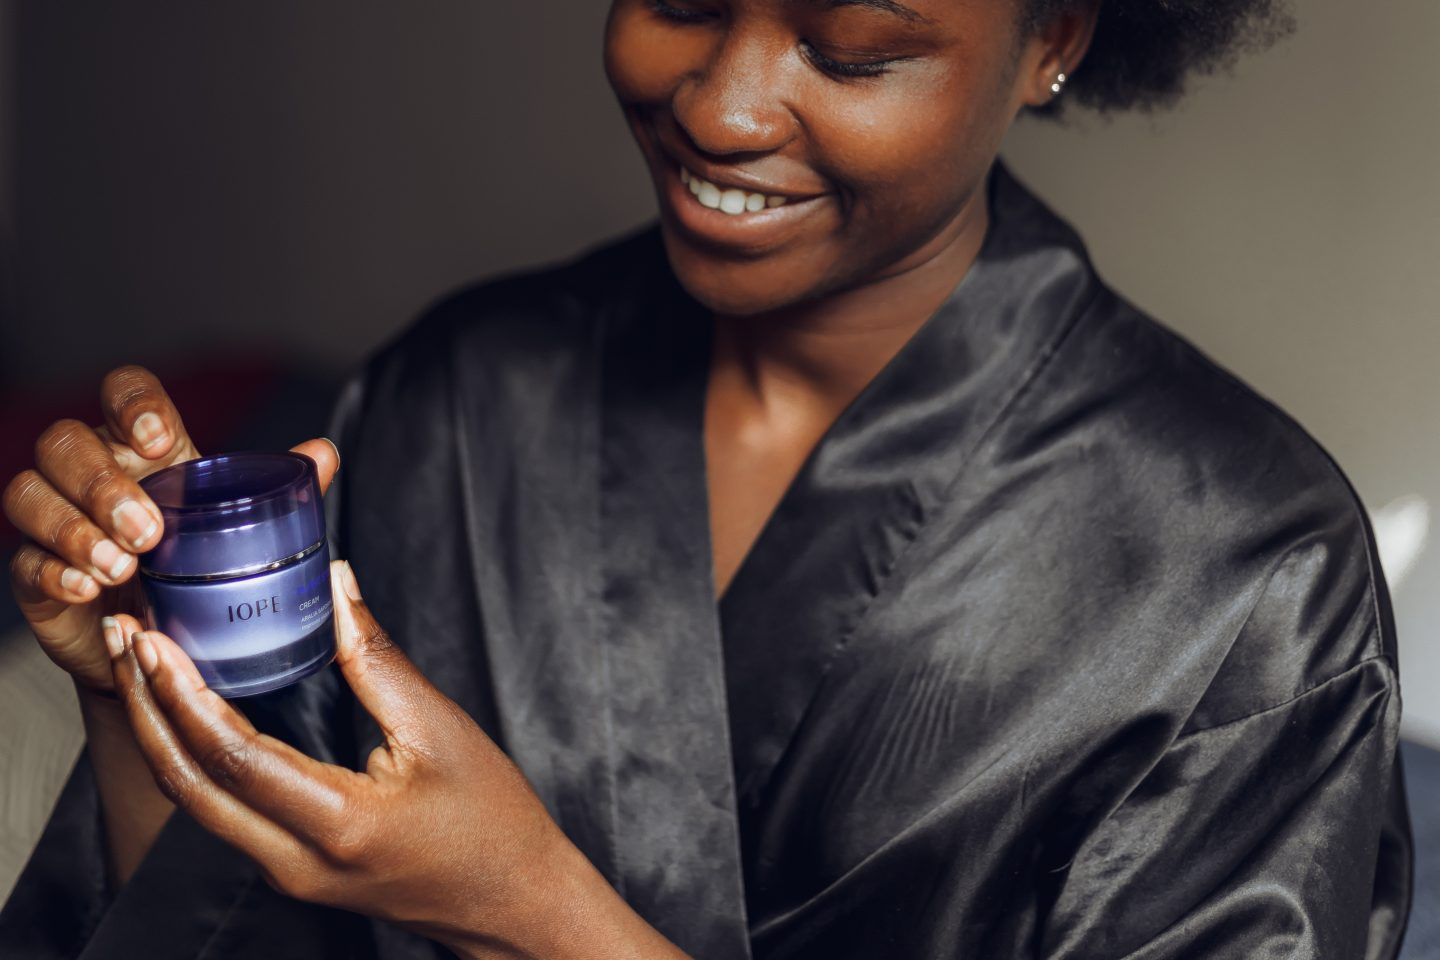 Holding an Iope Plant Stem Cell Cream